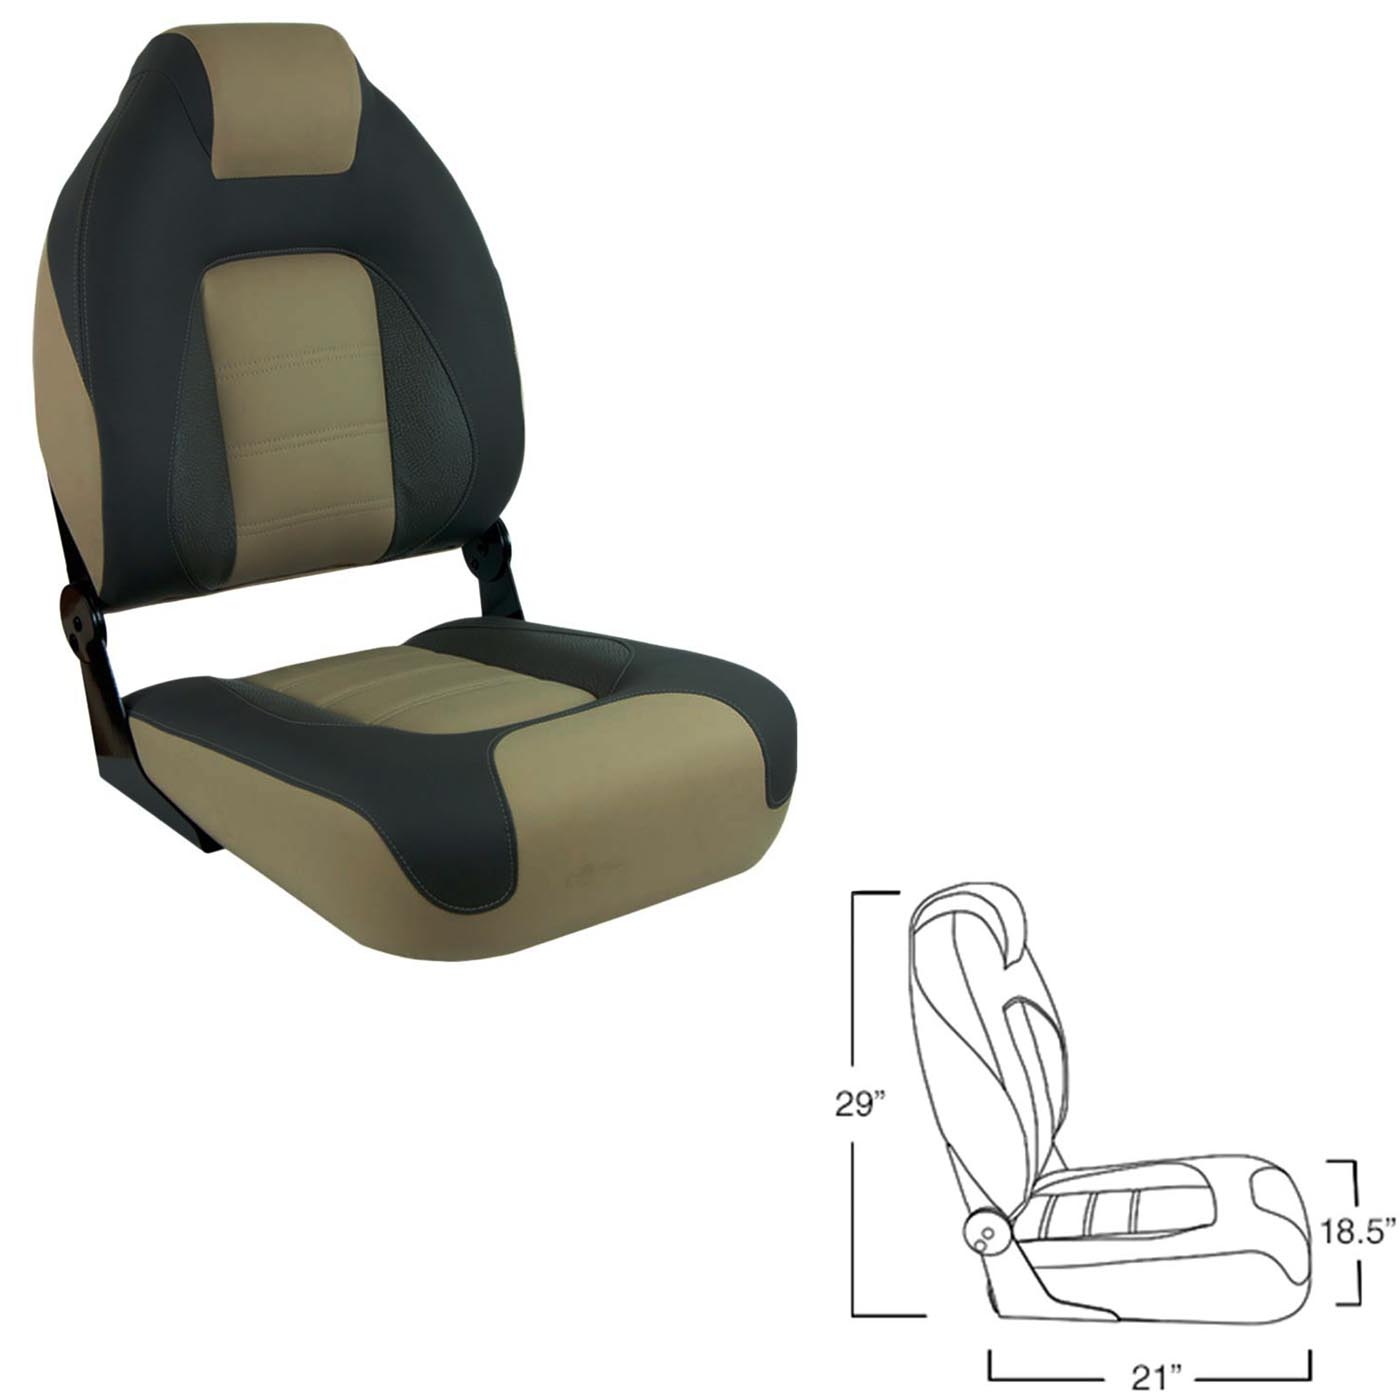 Details about Springfield 1062583 OEM Series Folding Seat Boat Chair  Charcoal & Tan Upholstery